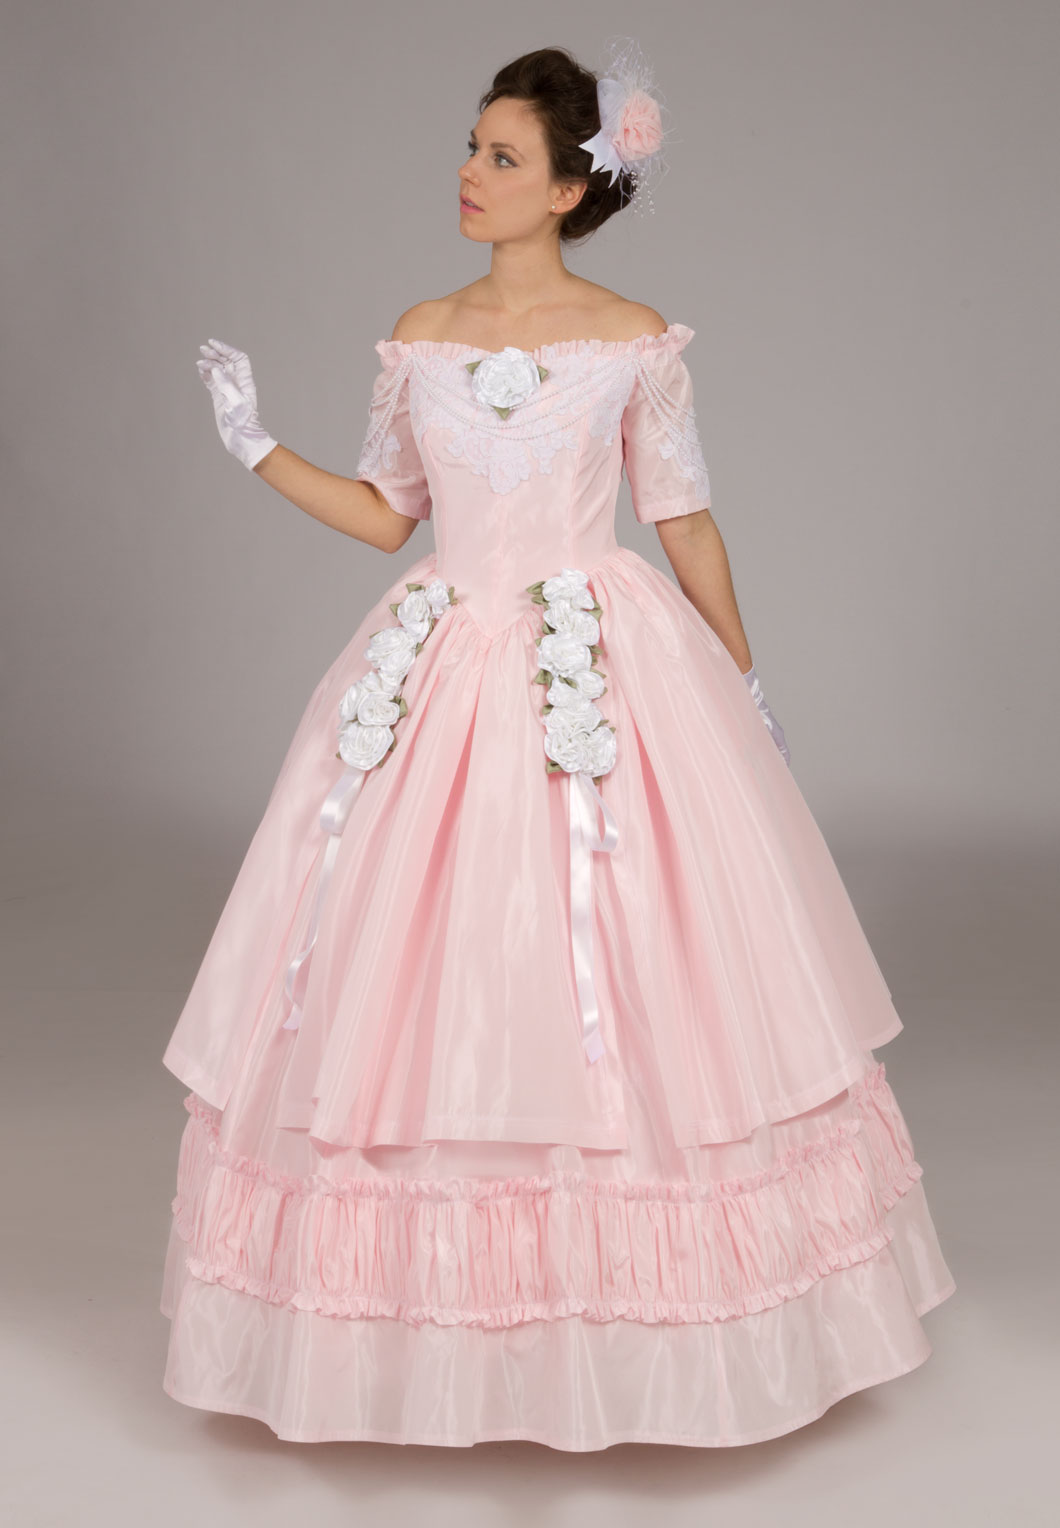 Victorian ball gown recollections for Old west wedding dresses